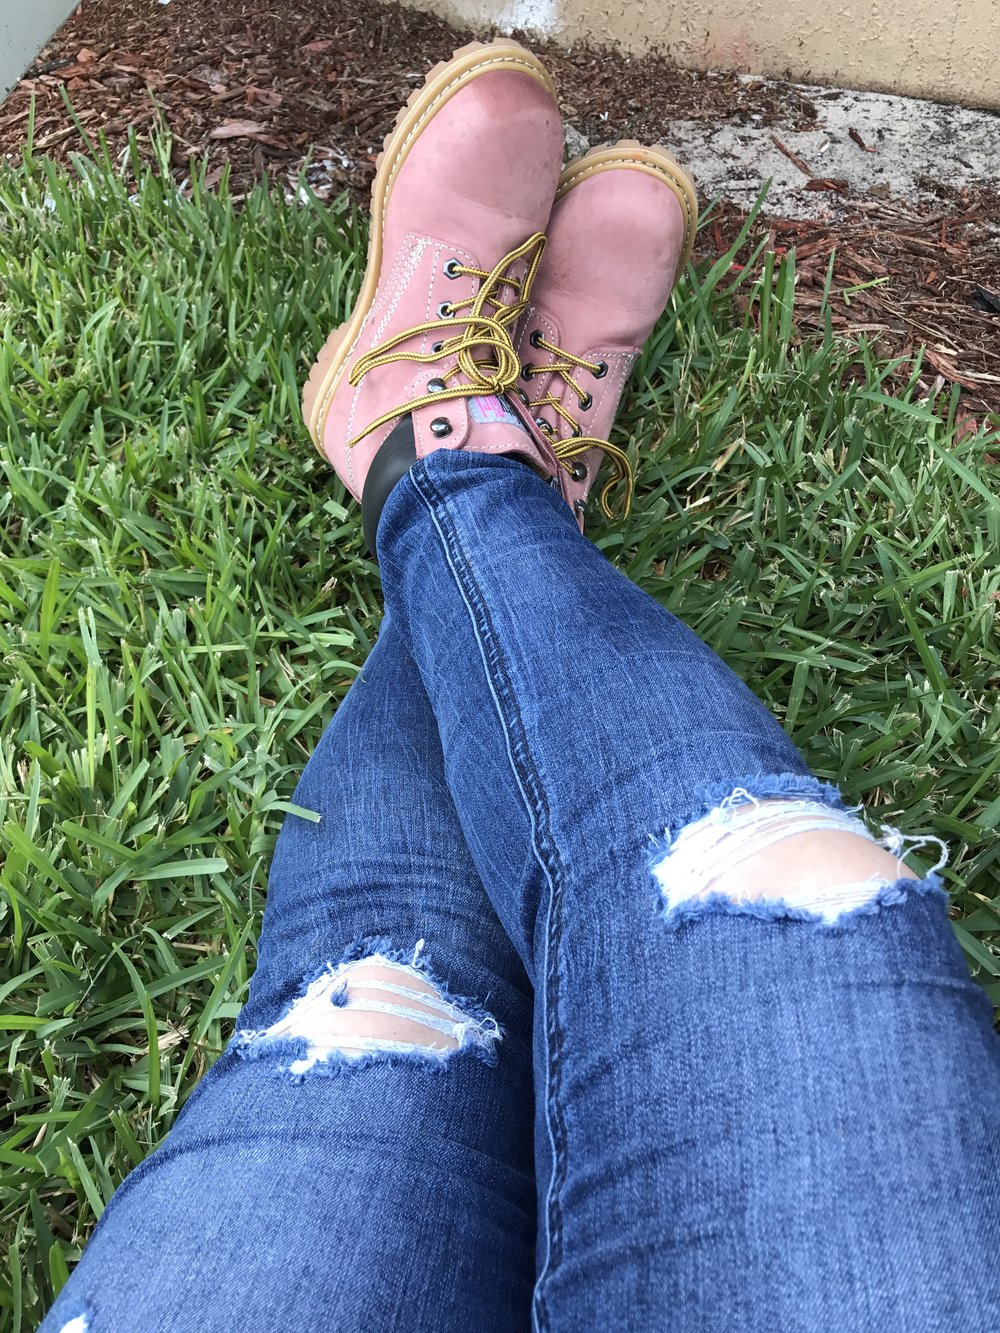 Taking a break and enjoying the breeze after a successful week of work.....in my pink boots! - Sandra